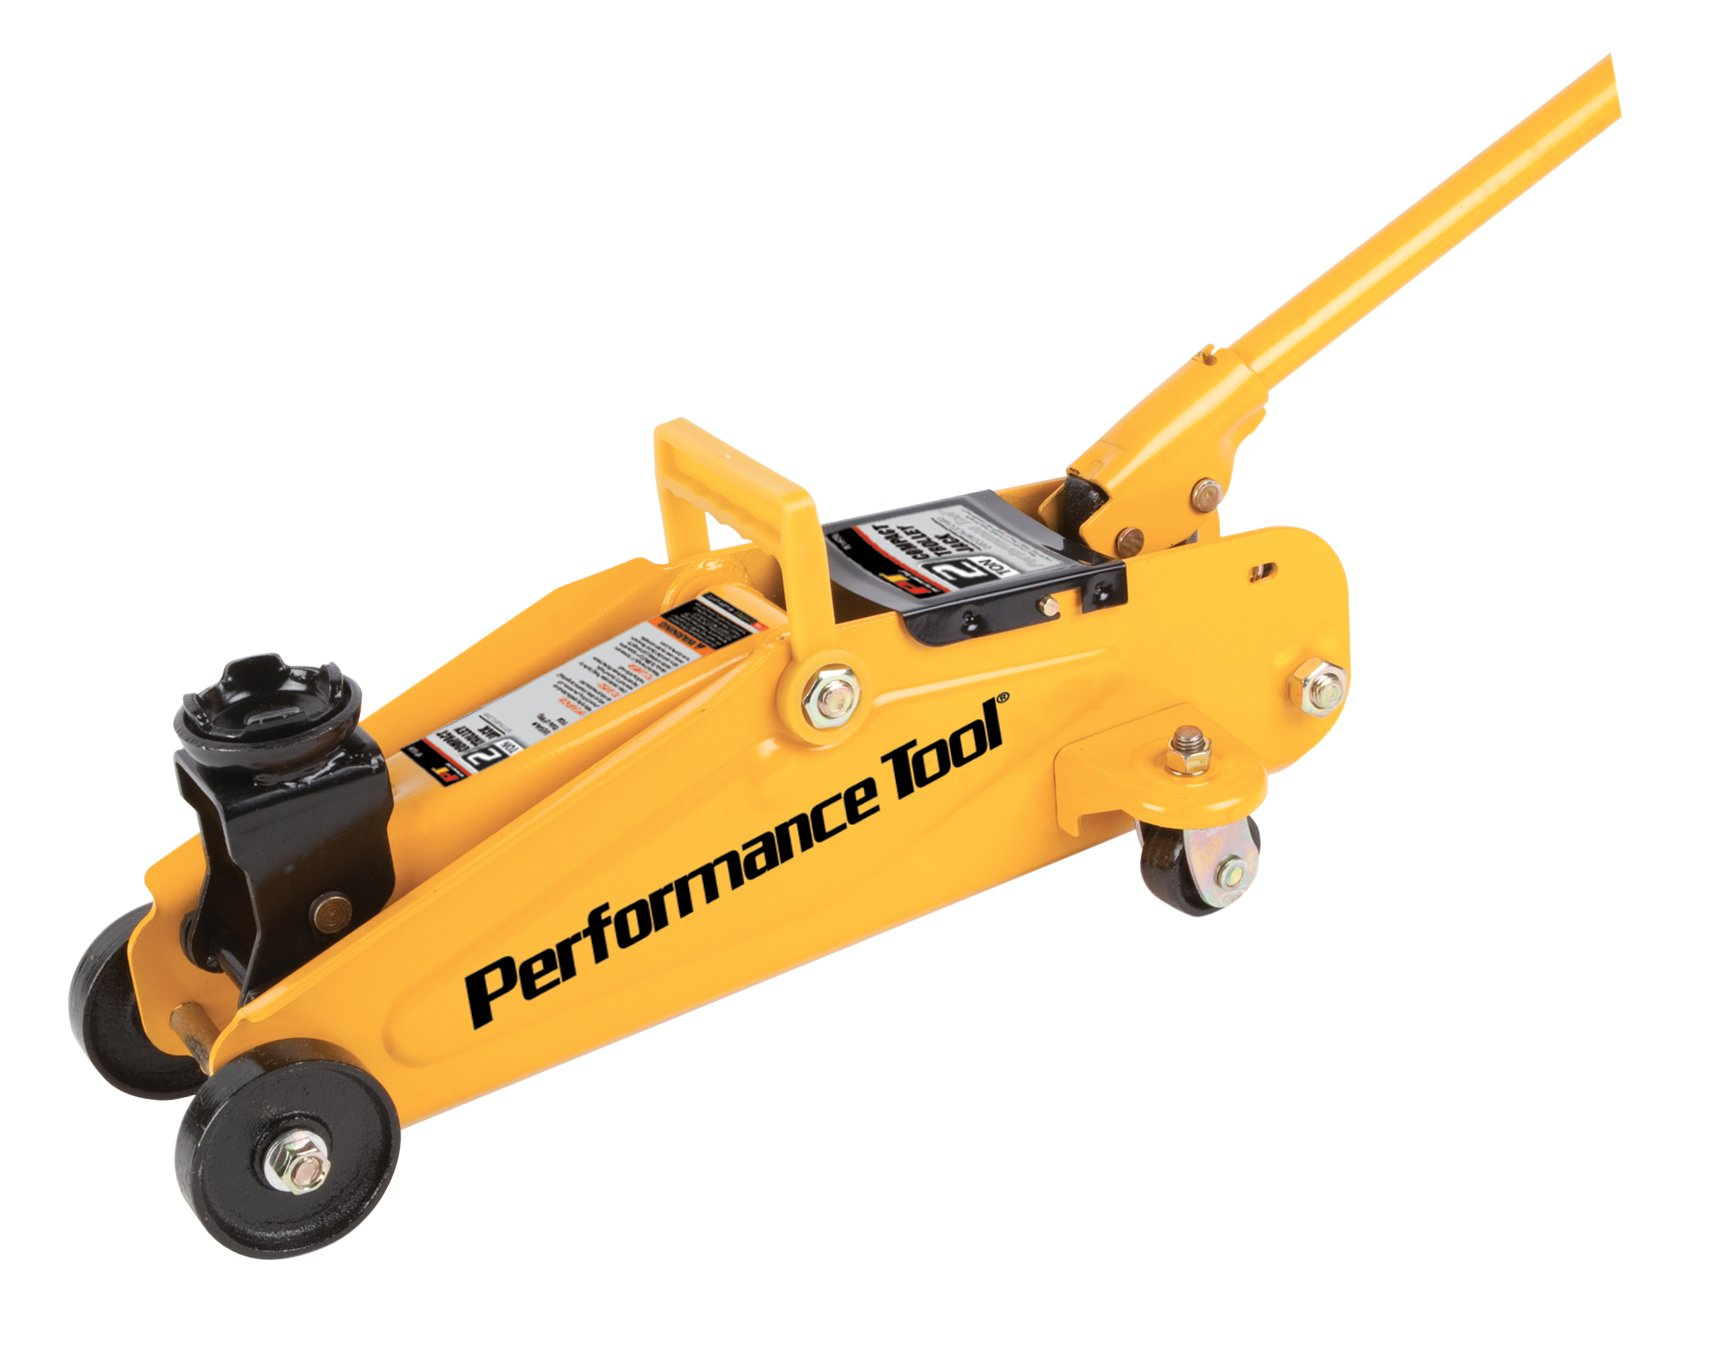 Performance Tool W1606 2 Ton (4,000 lbs.) Capacity Compact Trolley Jack by Performance Tool (Image #1)